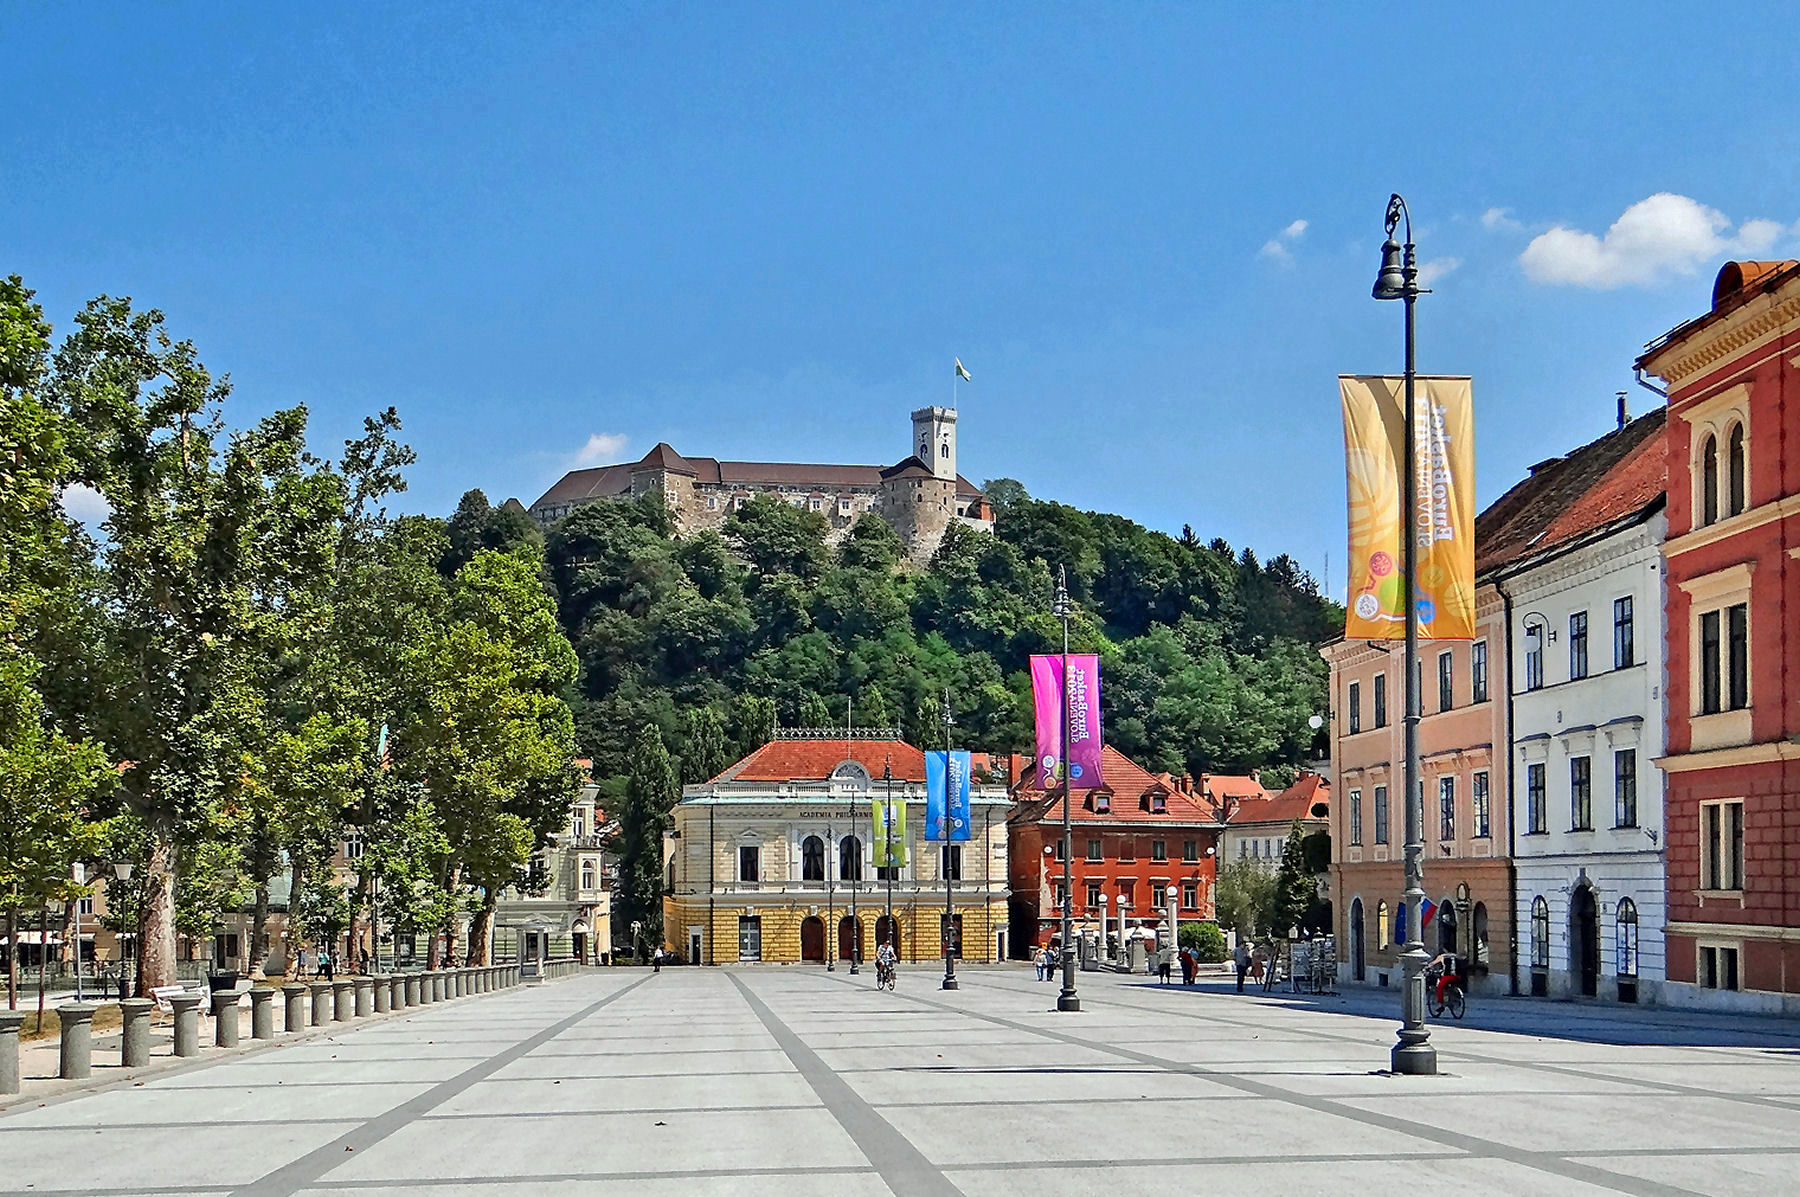 The view of the Ljubljana castle from the Congress square is breathtaking